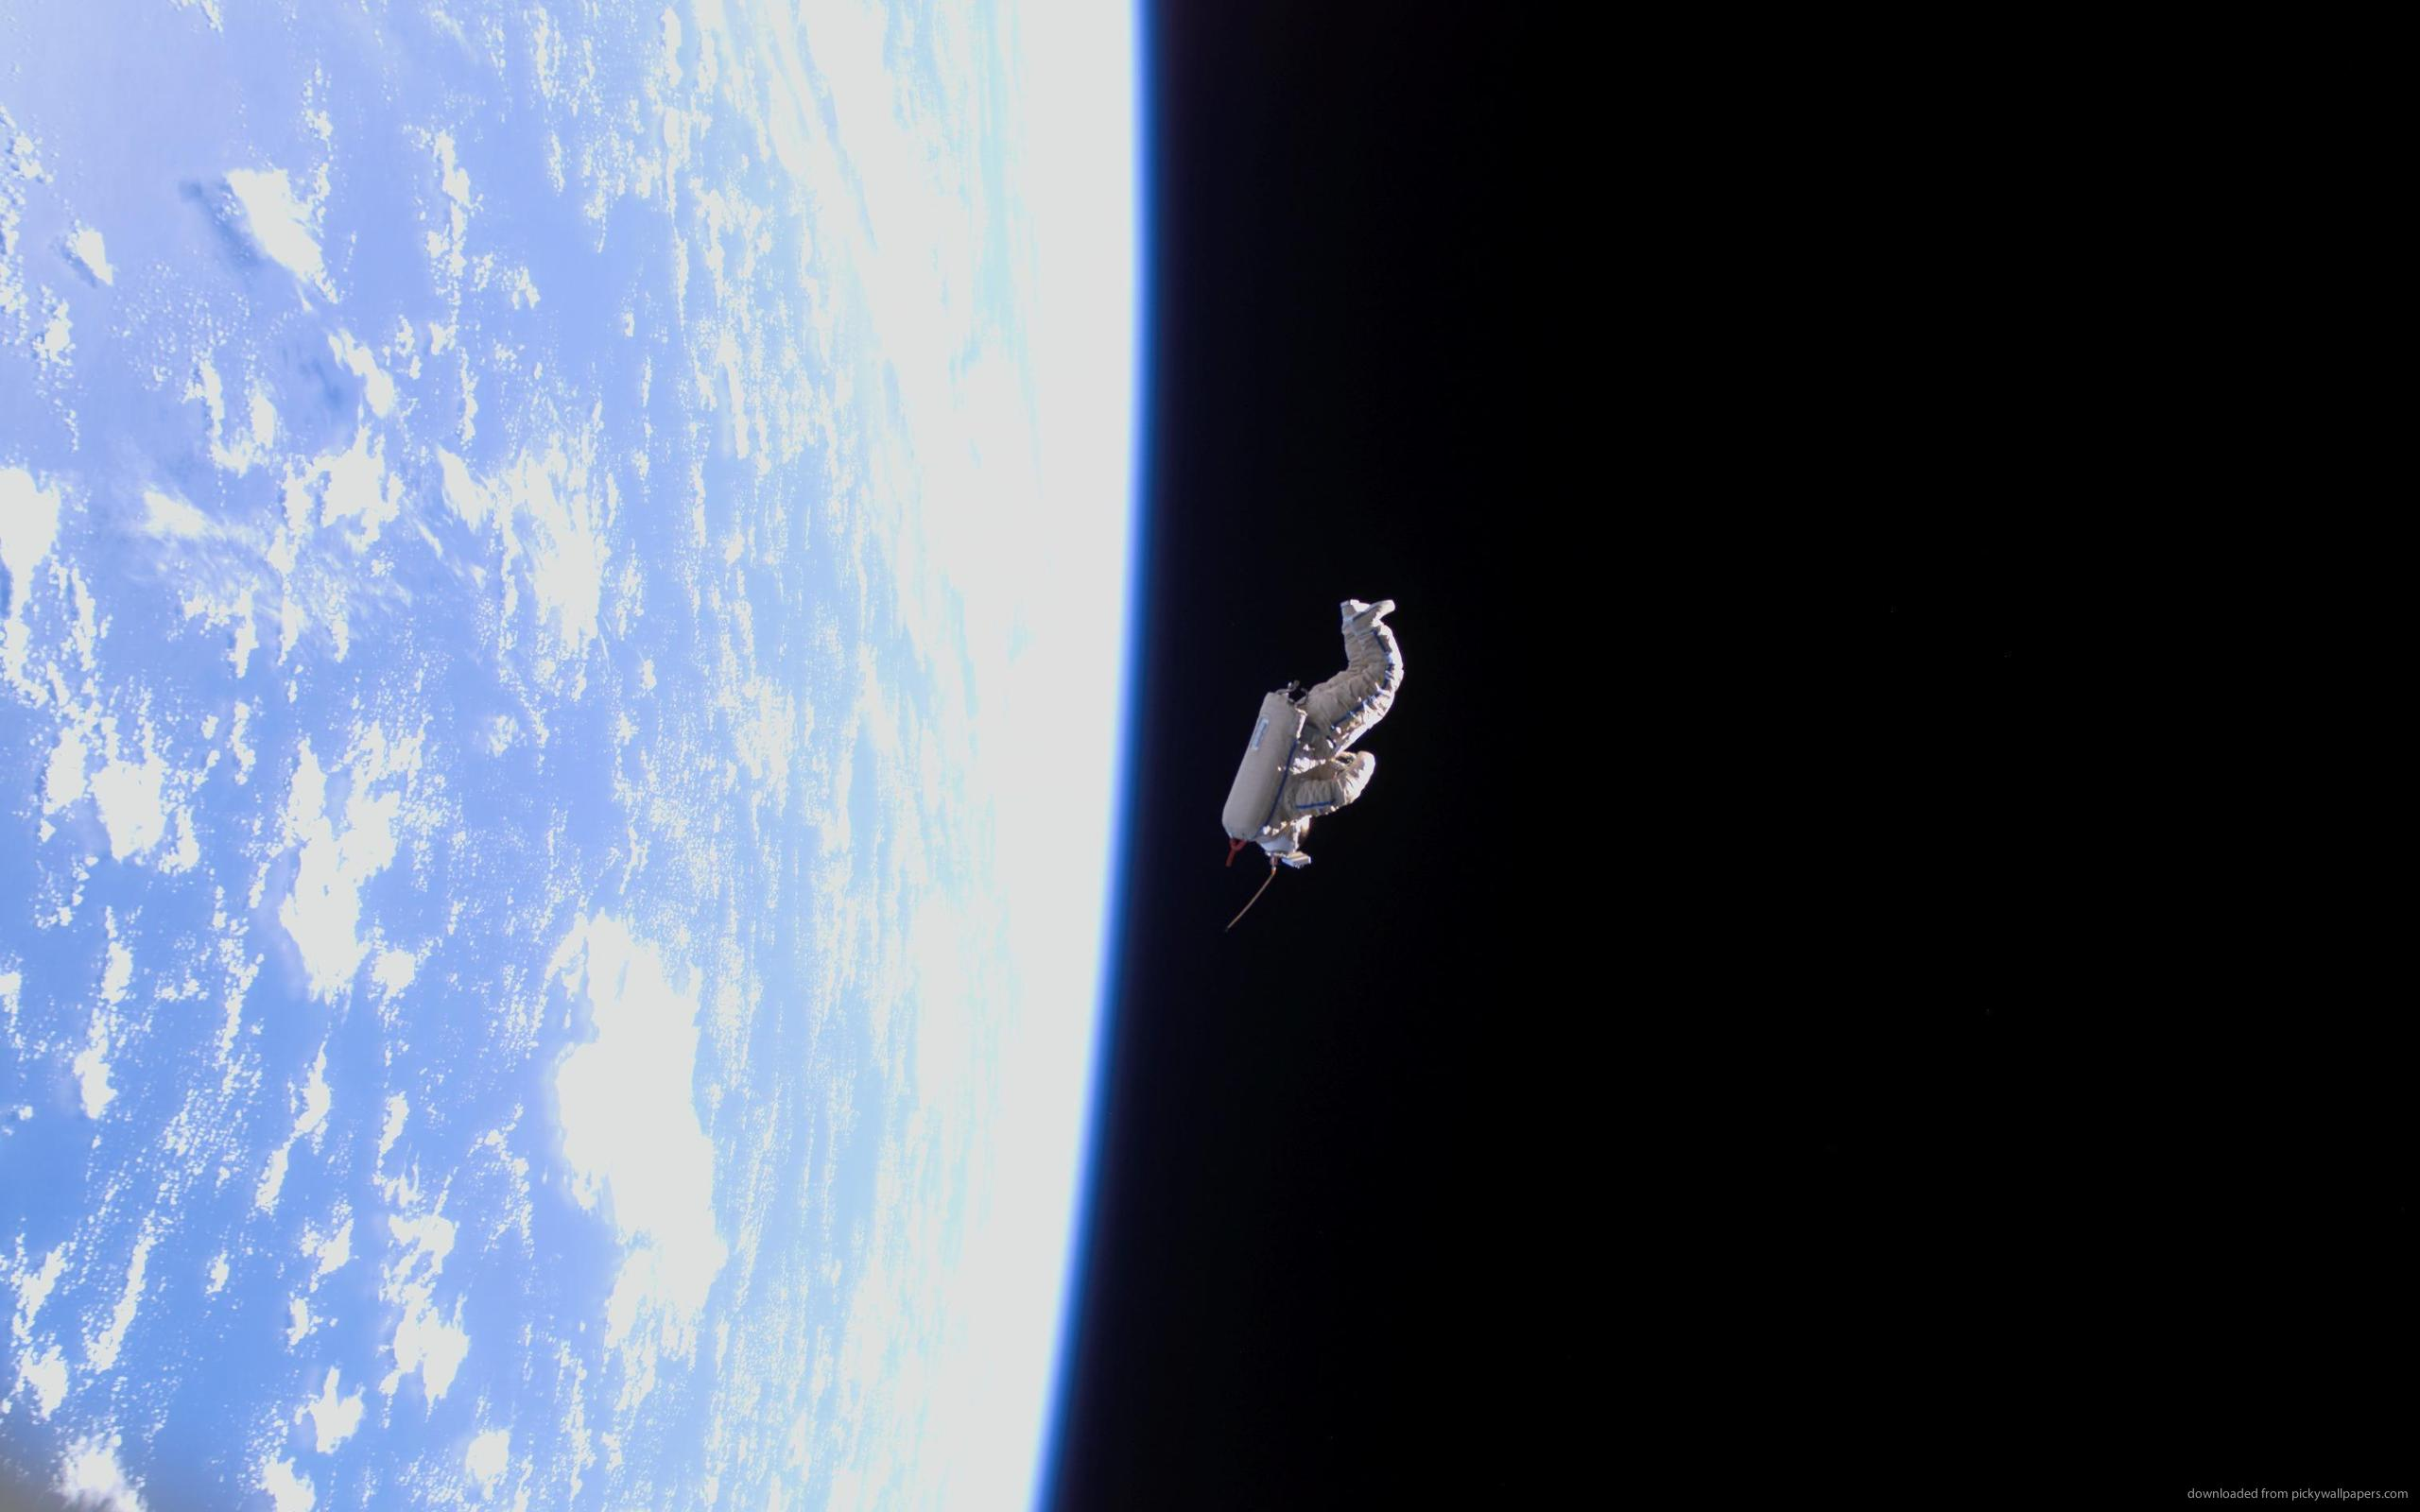 Download Gravity Astronaut Drifting In Space Wallpaper - Lonely Astronaut Floating In Space , HD Wallpaper & Backgrounds